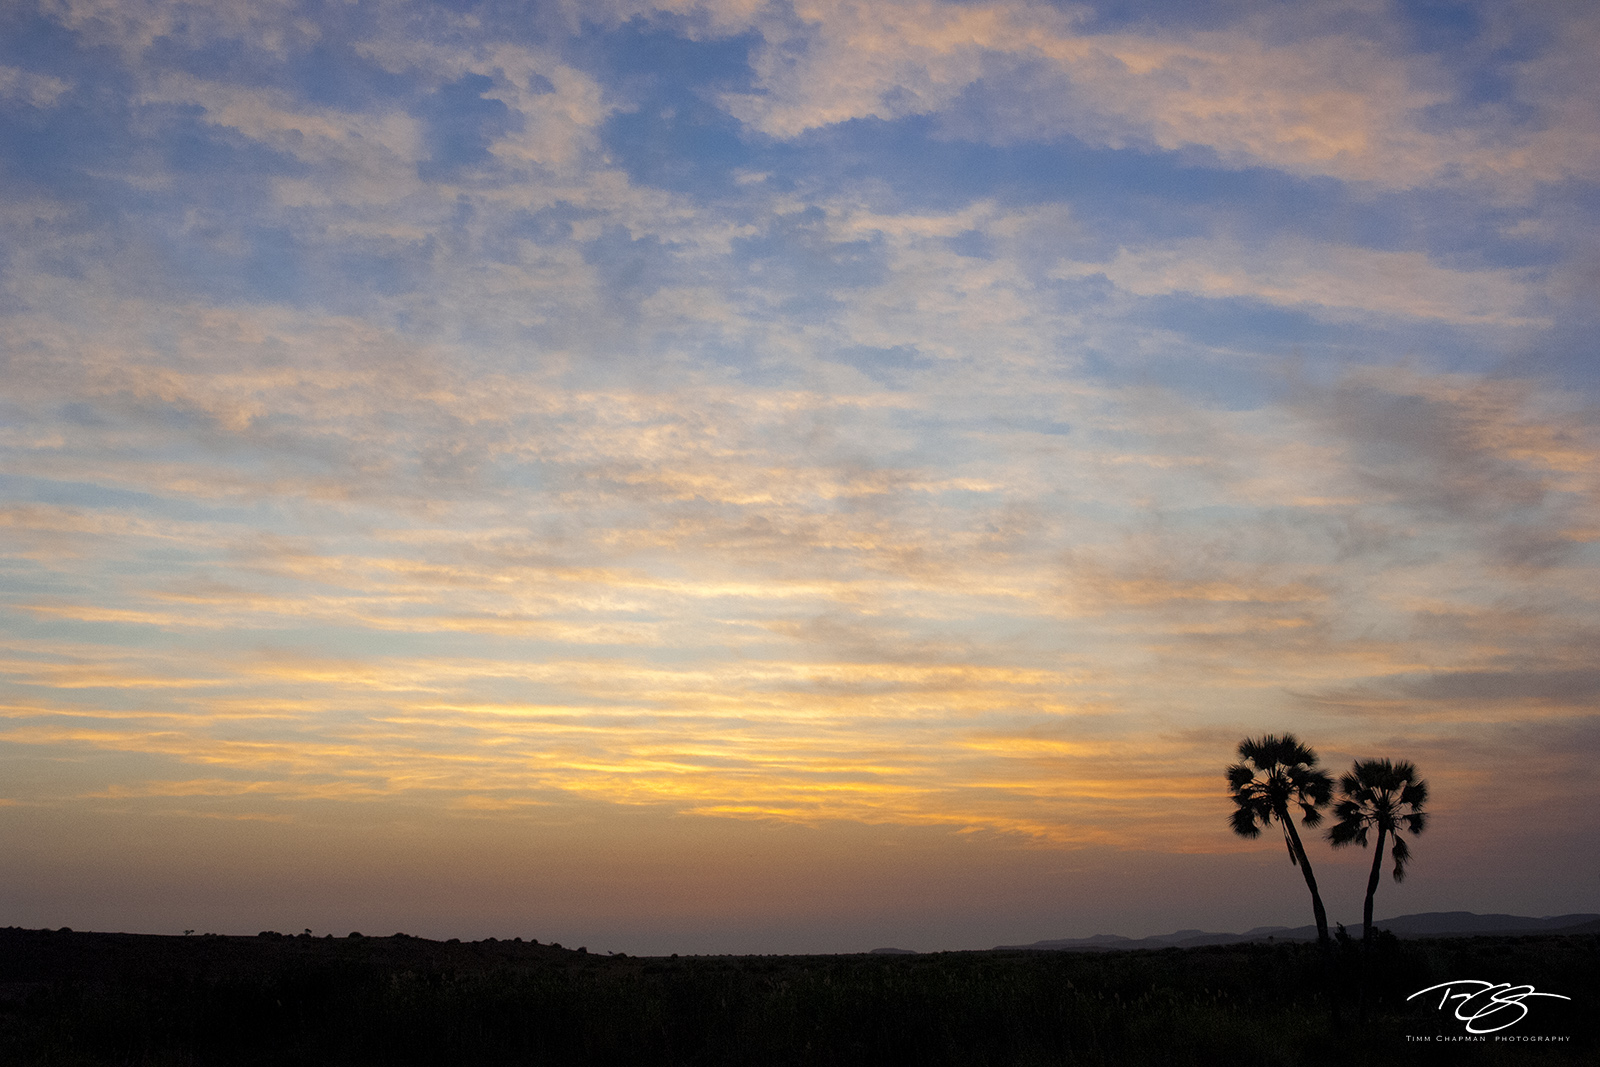 namibia, palmwag, palm trees, silhouette, sunset, twilight, predawn, namib desert, southwest africa, cloudy, photo